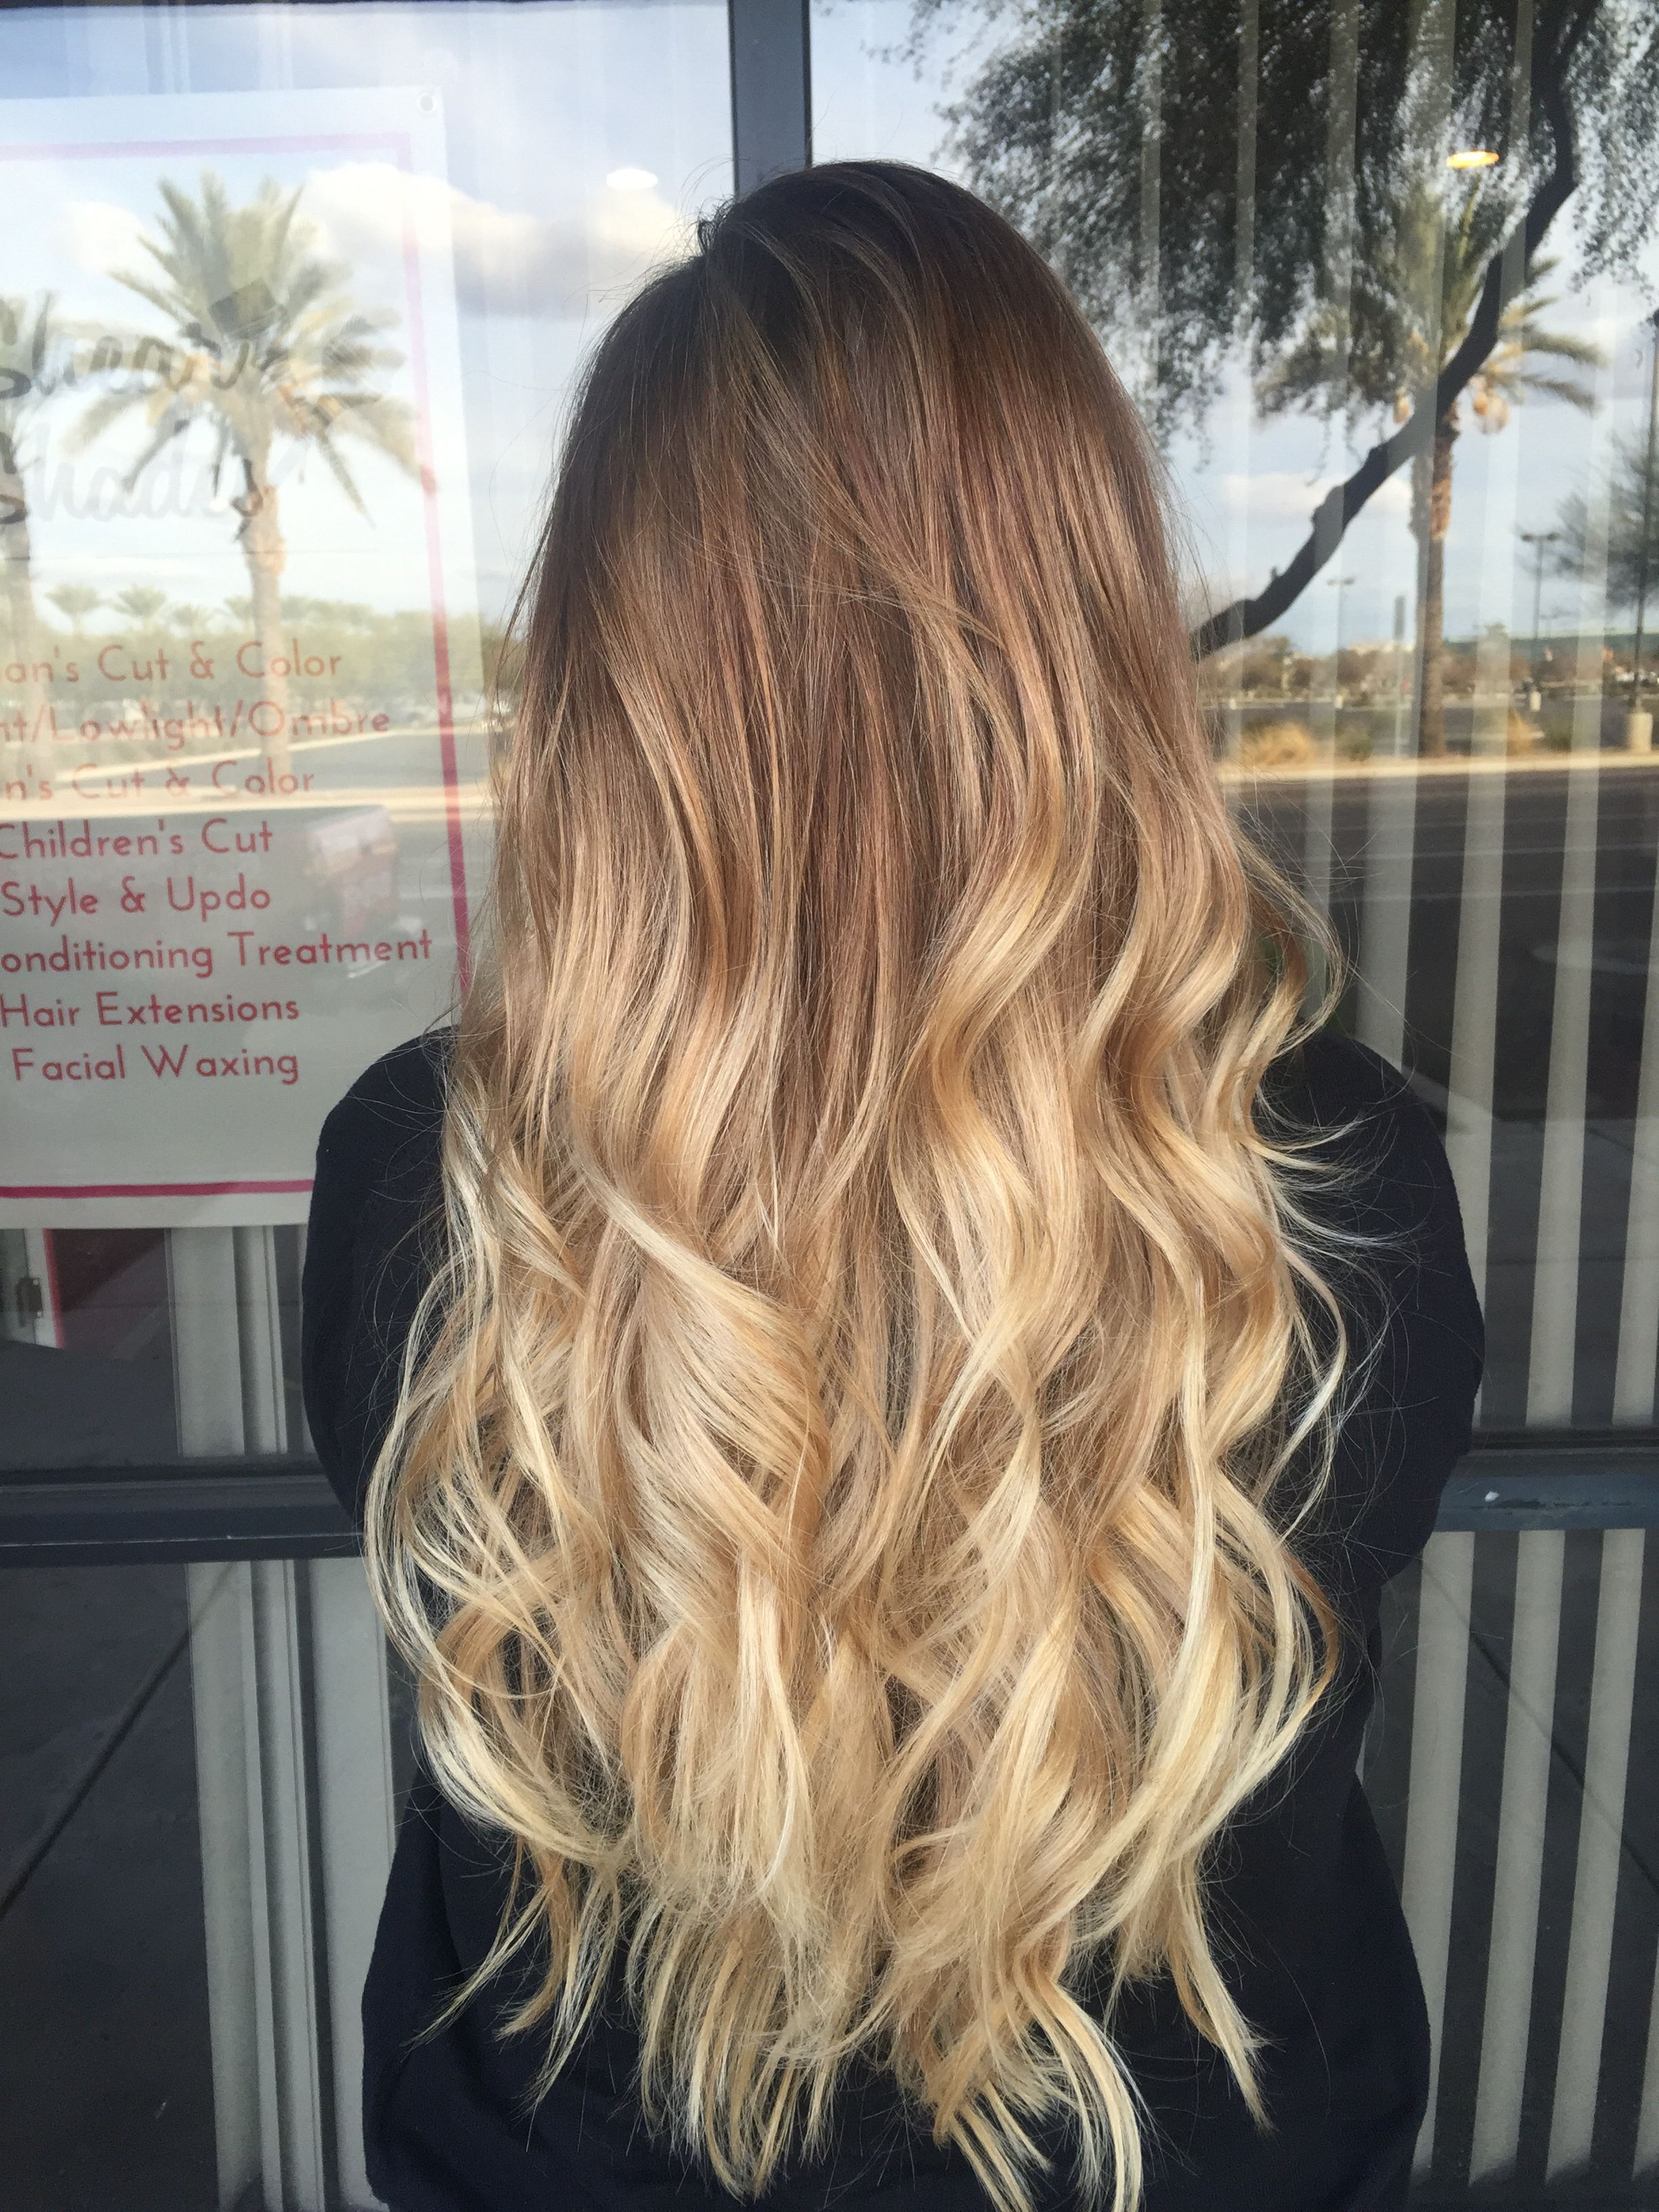 long blonde balayage hair hair pinterest blonde balayage balayage and blondes. Black Bedroom Furniture Sets. Home Design Ideas